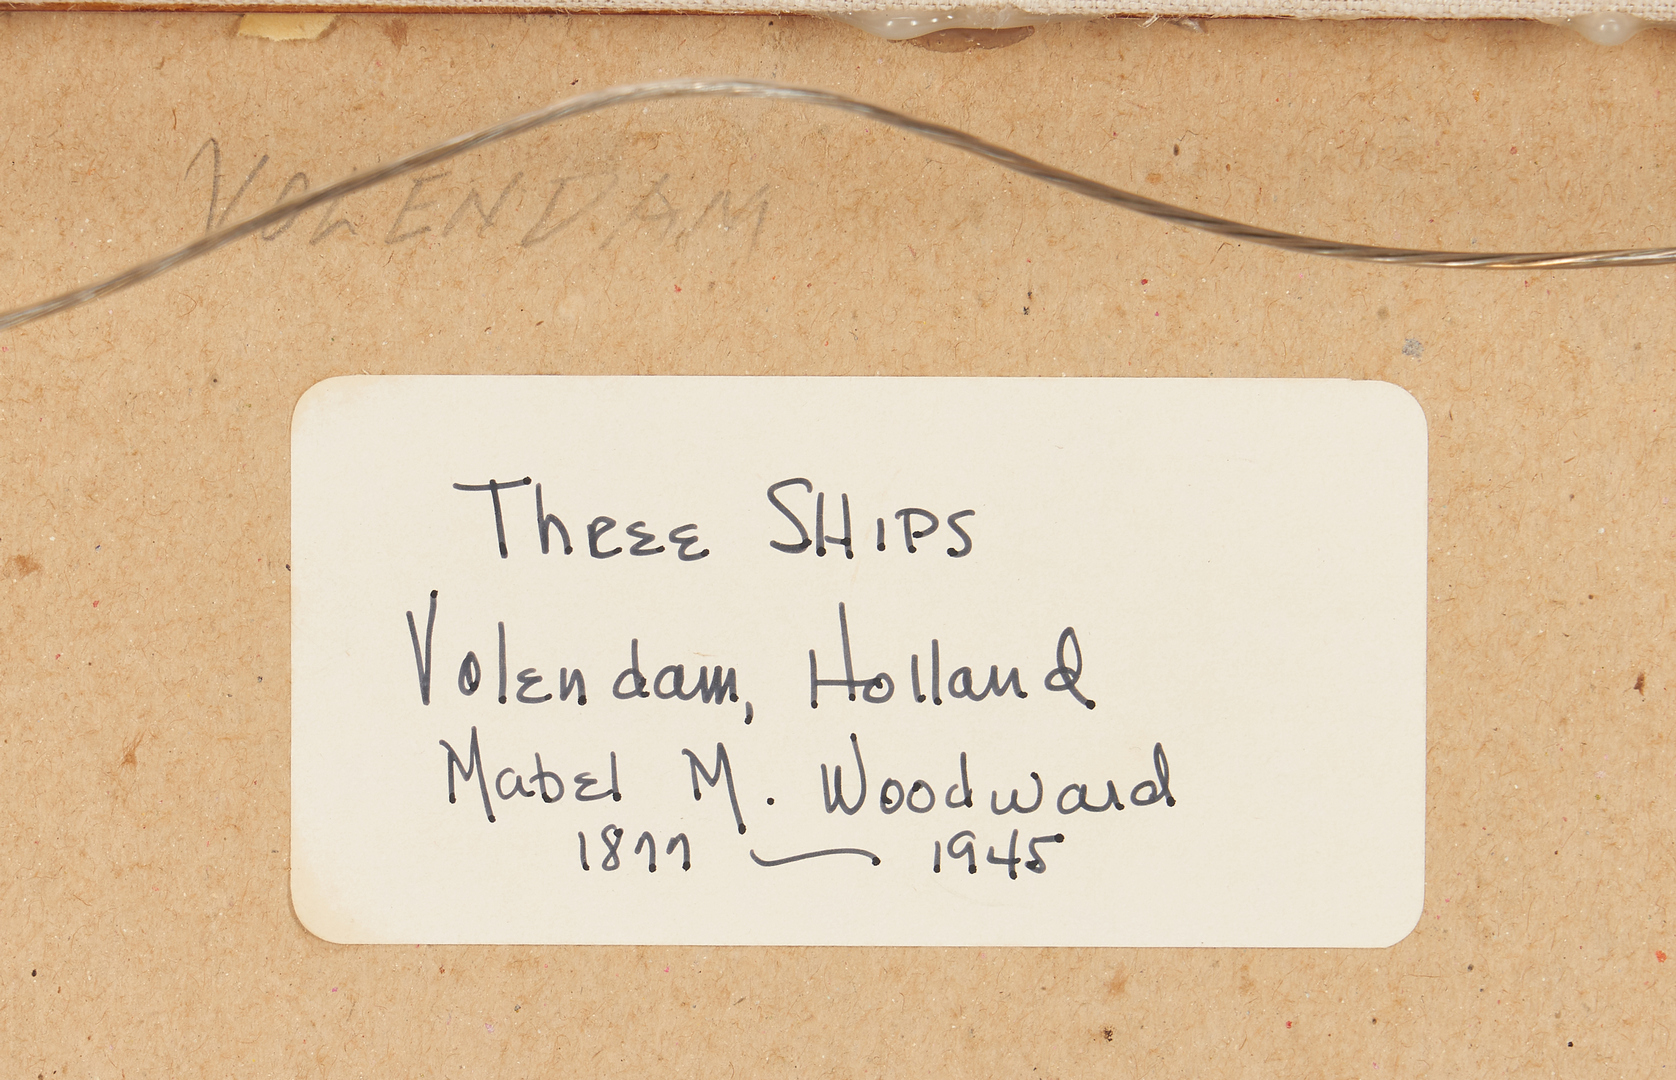 Lot 153: Mabel Woodward Oil Maritime Painting, Three Ships Volendam, Holland